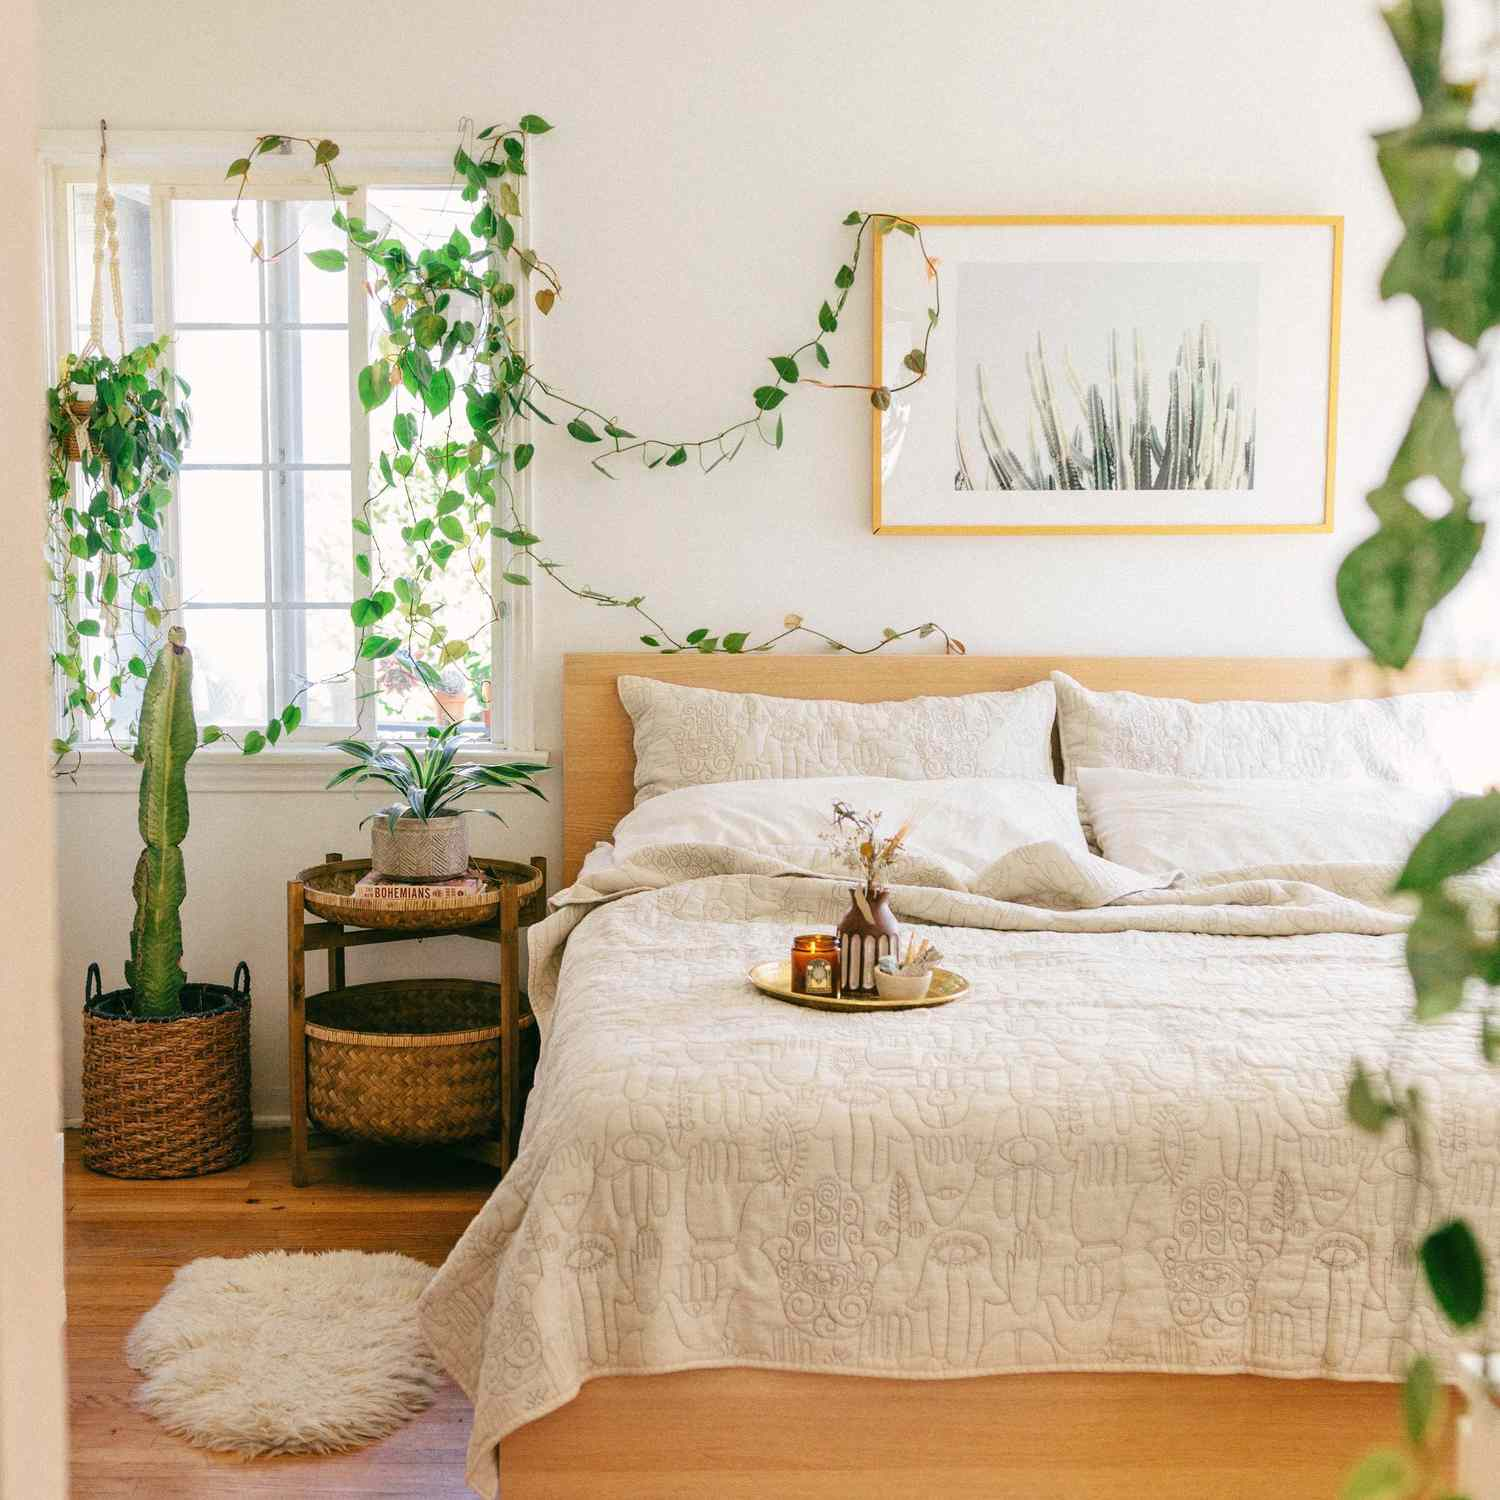 Bright and airy boho chic bedroom with plants